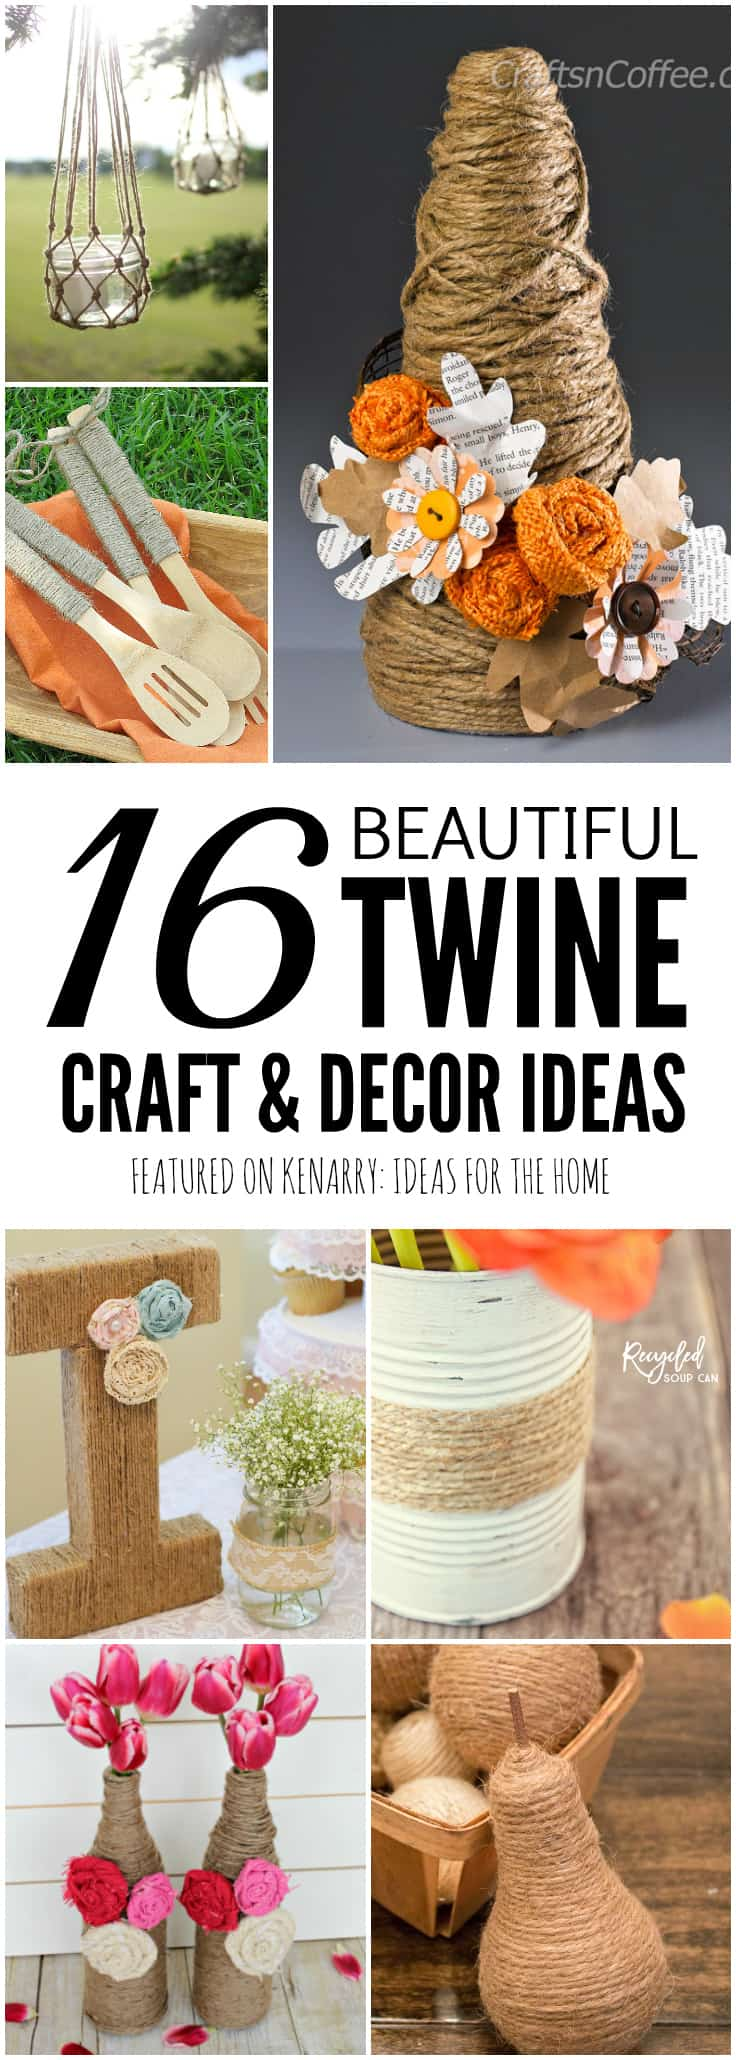 Jute Craft Ideas: 16 DIY Projects And Decor Using Burlap Twine